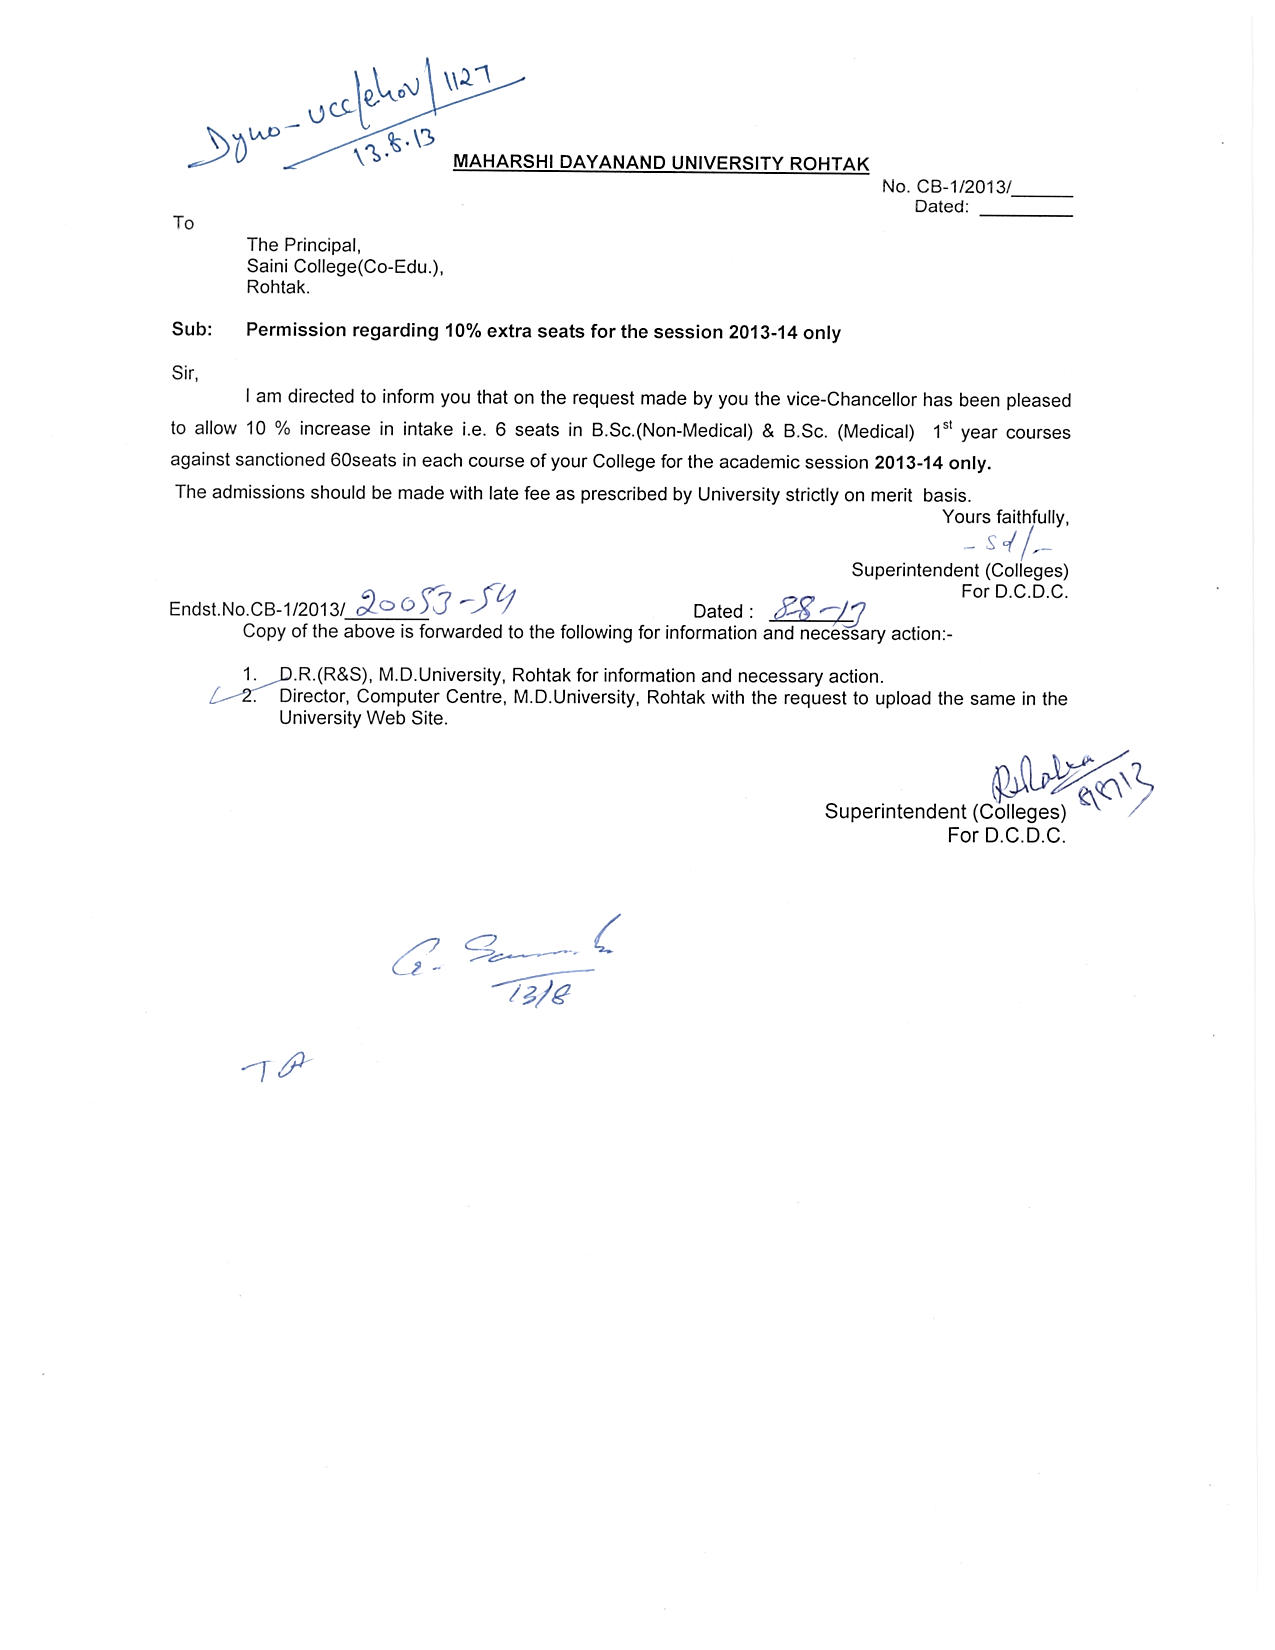 Permission regarding 10% extra seats for the session 2013-14 only